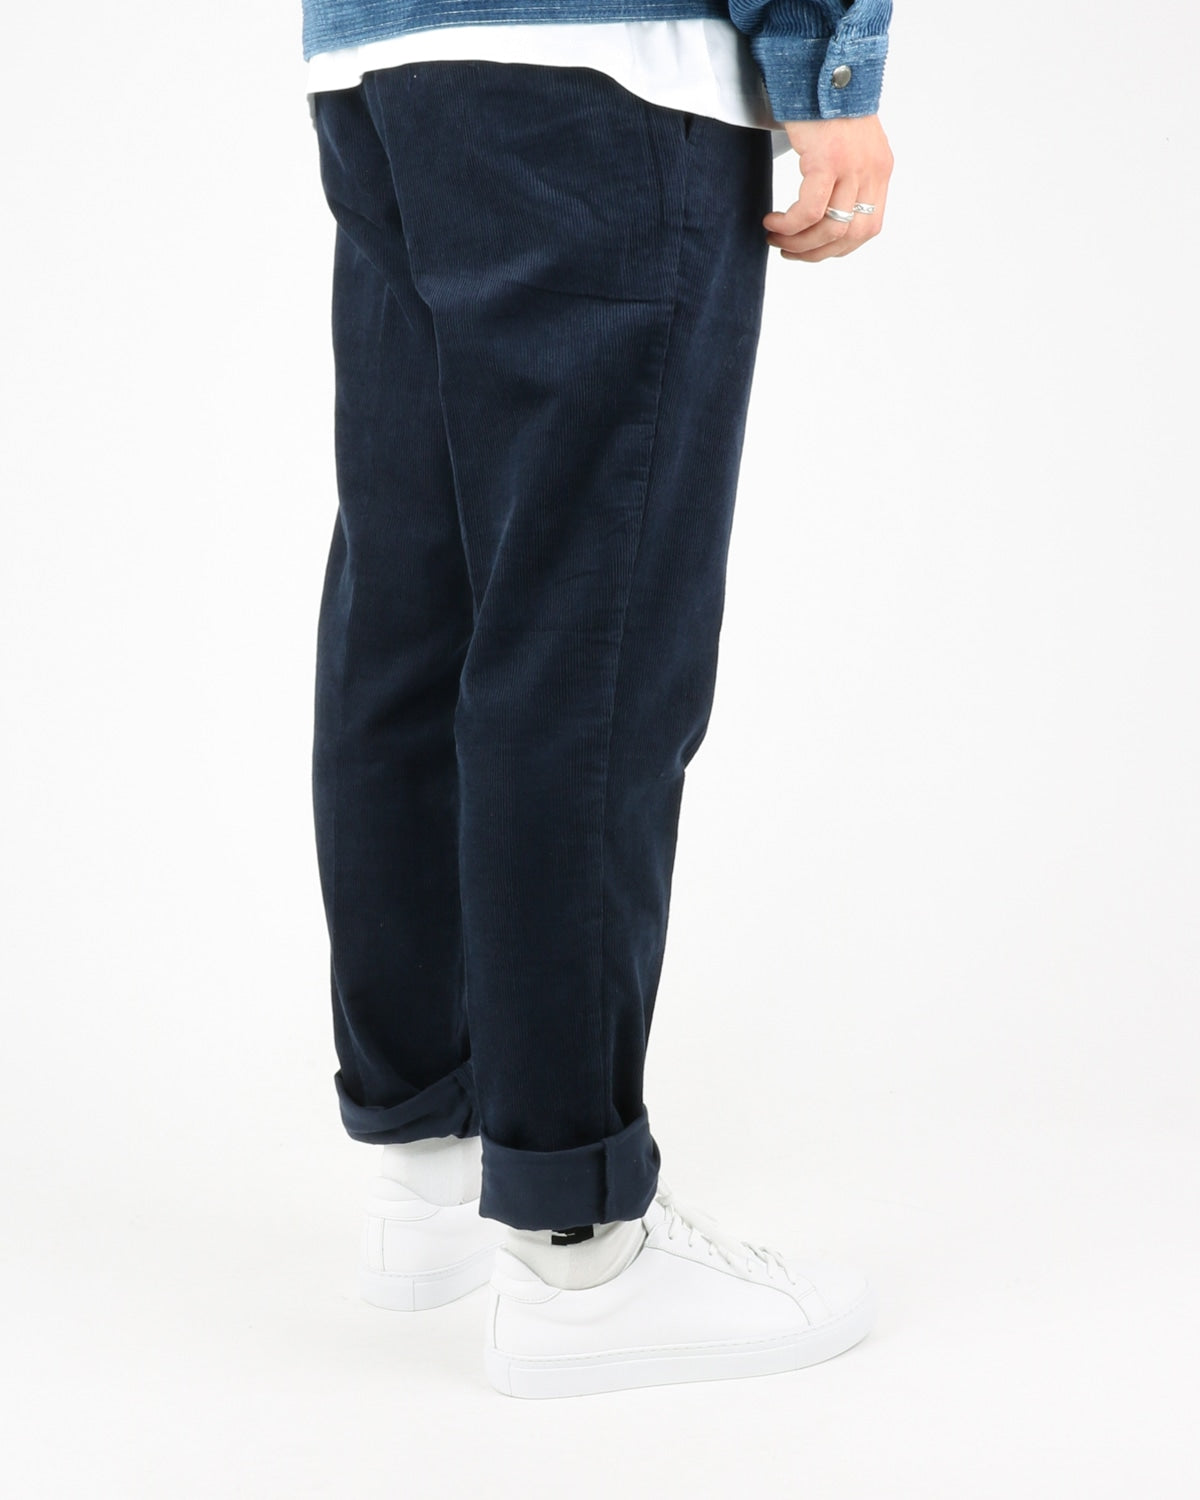 samsoe samsoe_laurent trousers_night sky_3_4